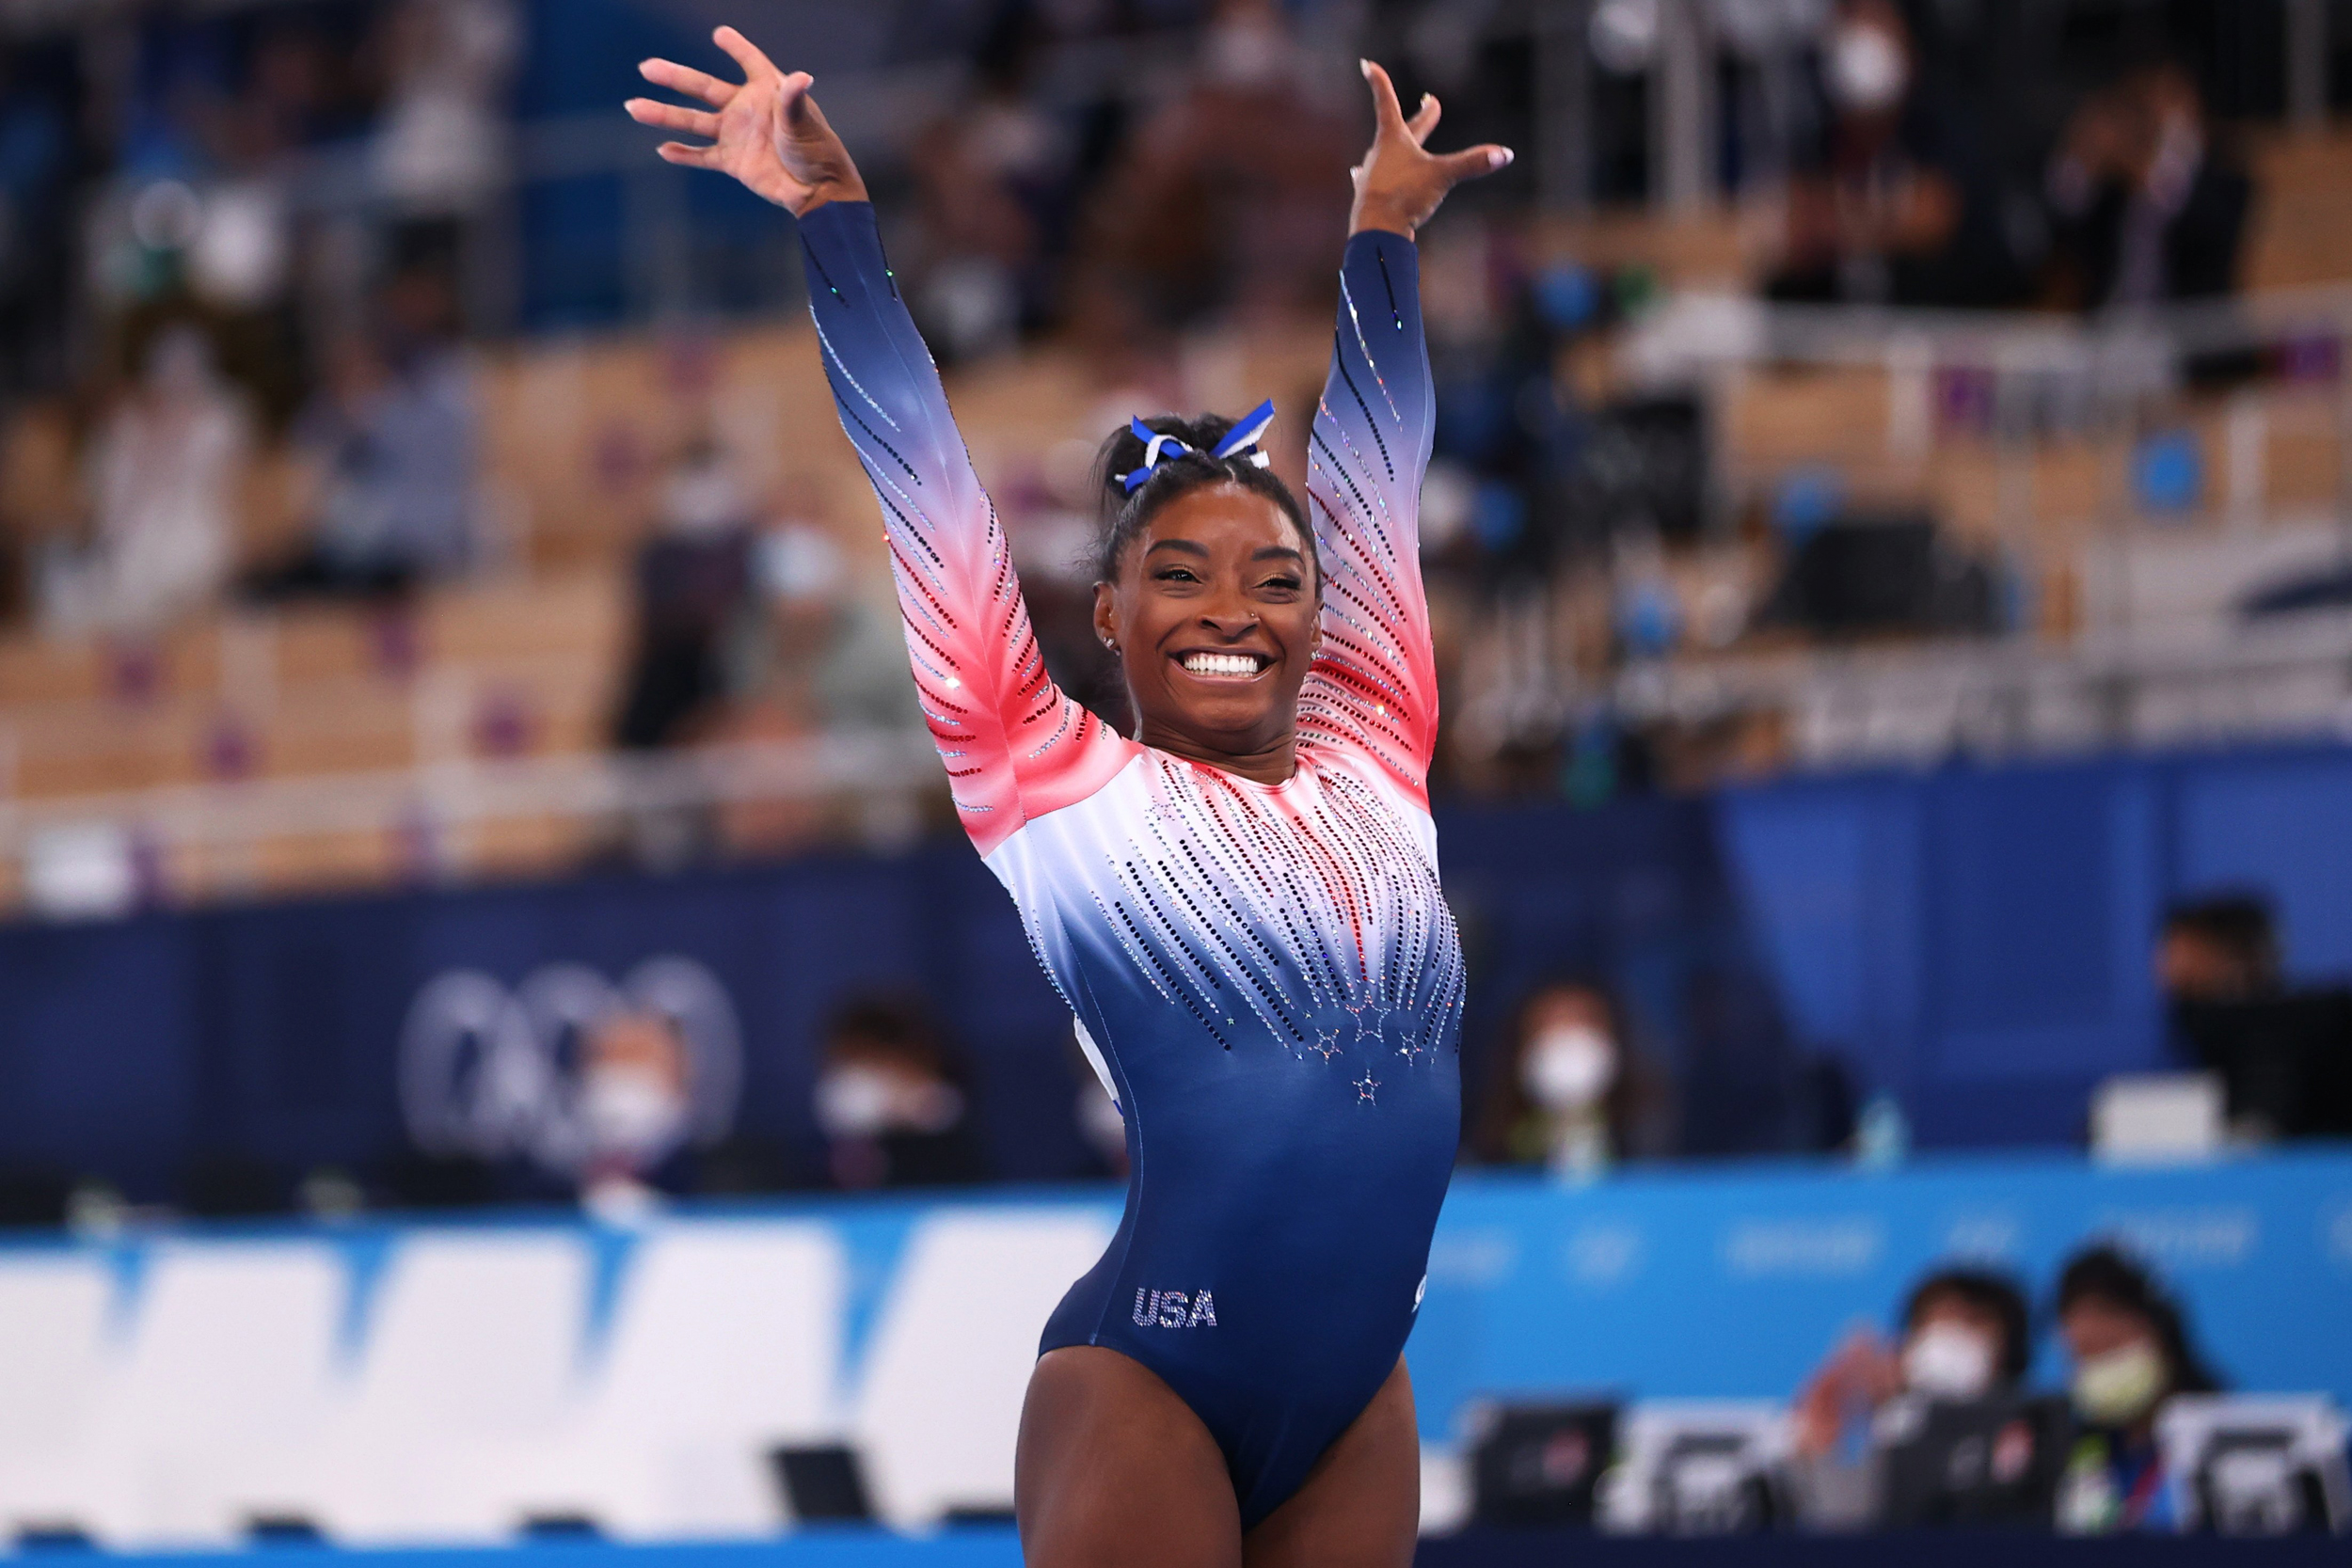 Simone Biles says she's 'keeping the door open' for Olympic return